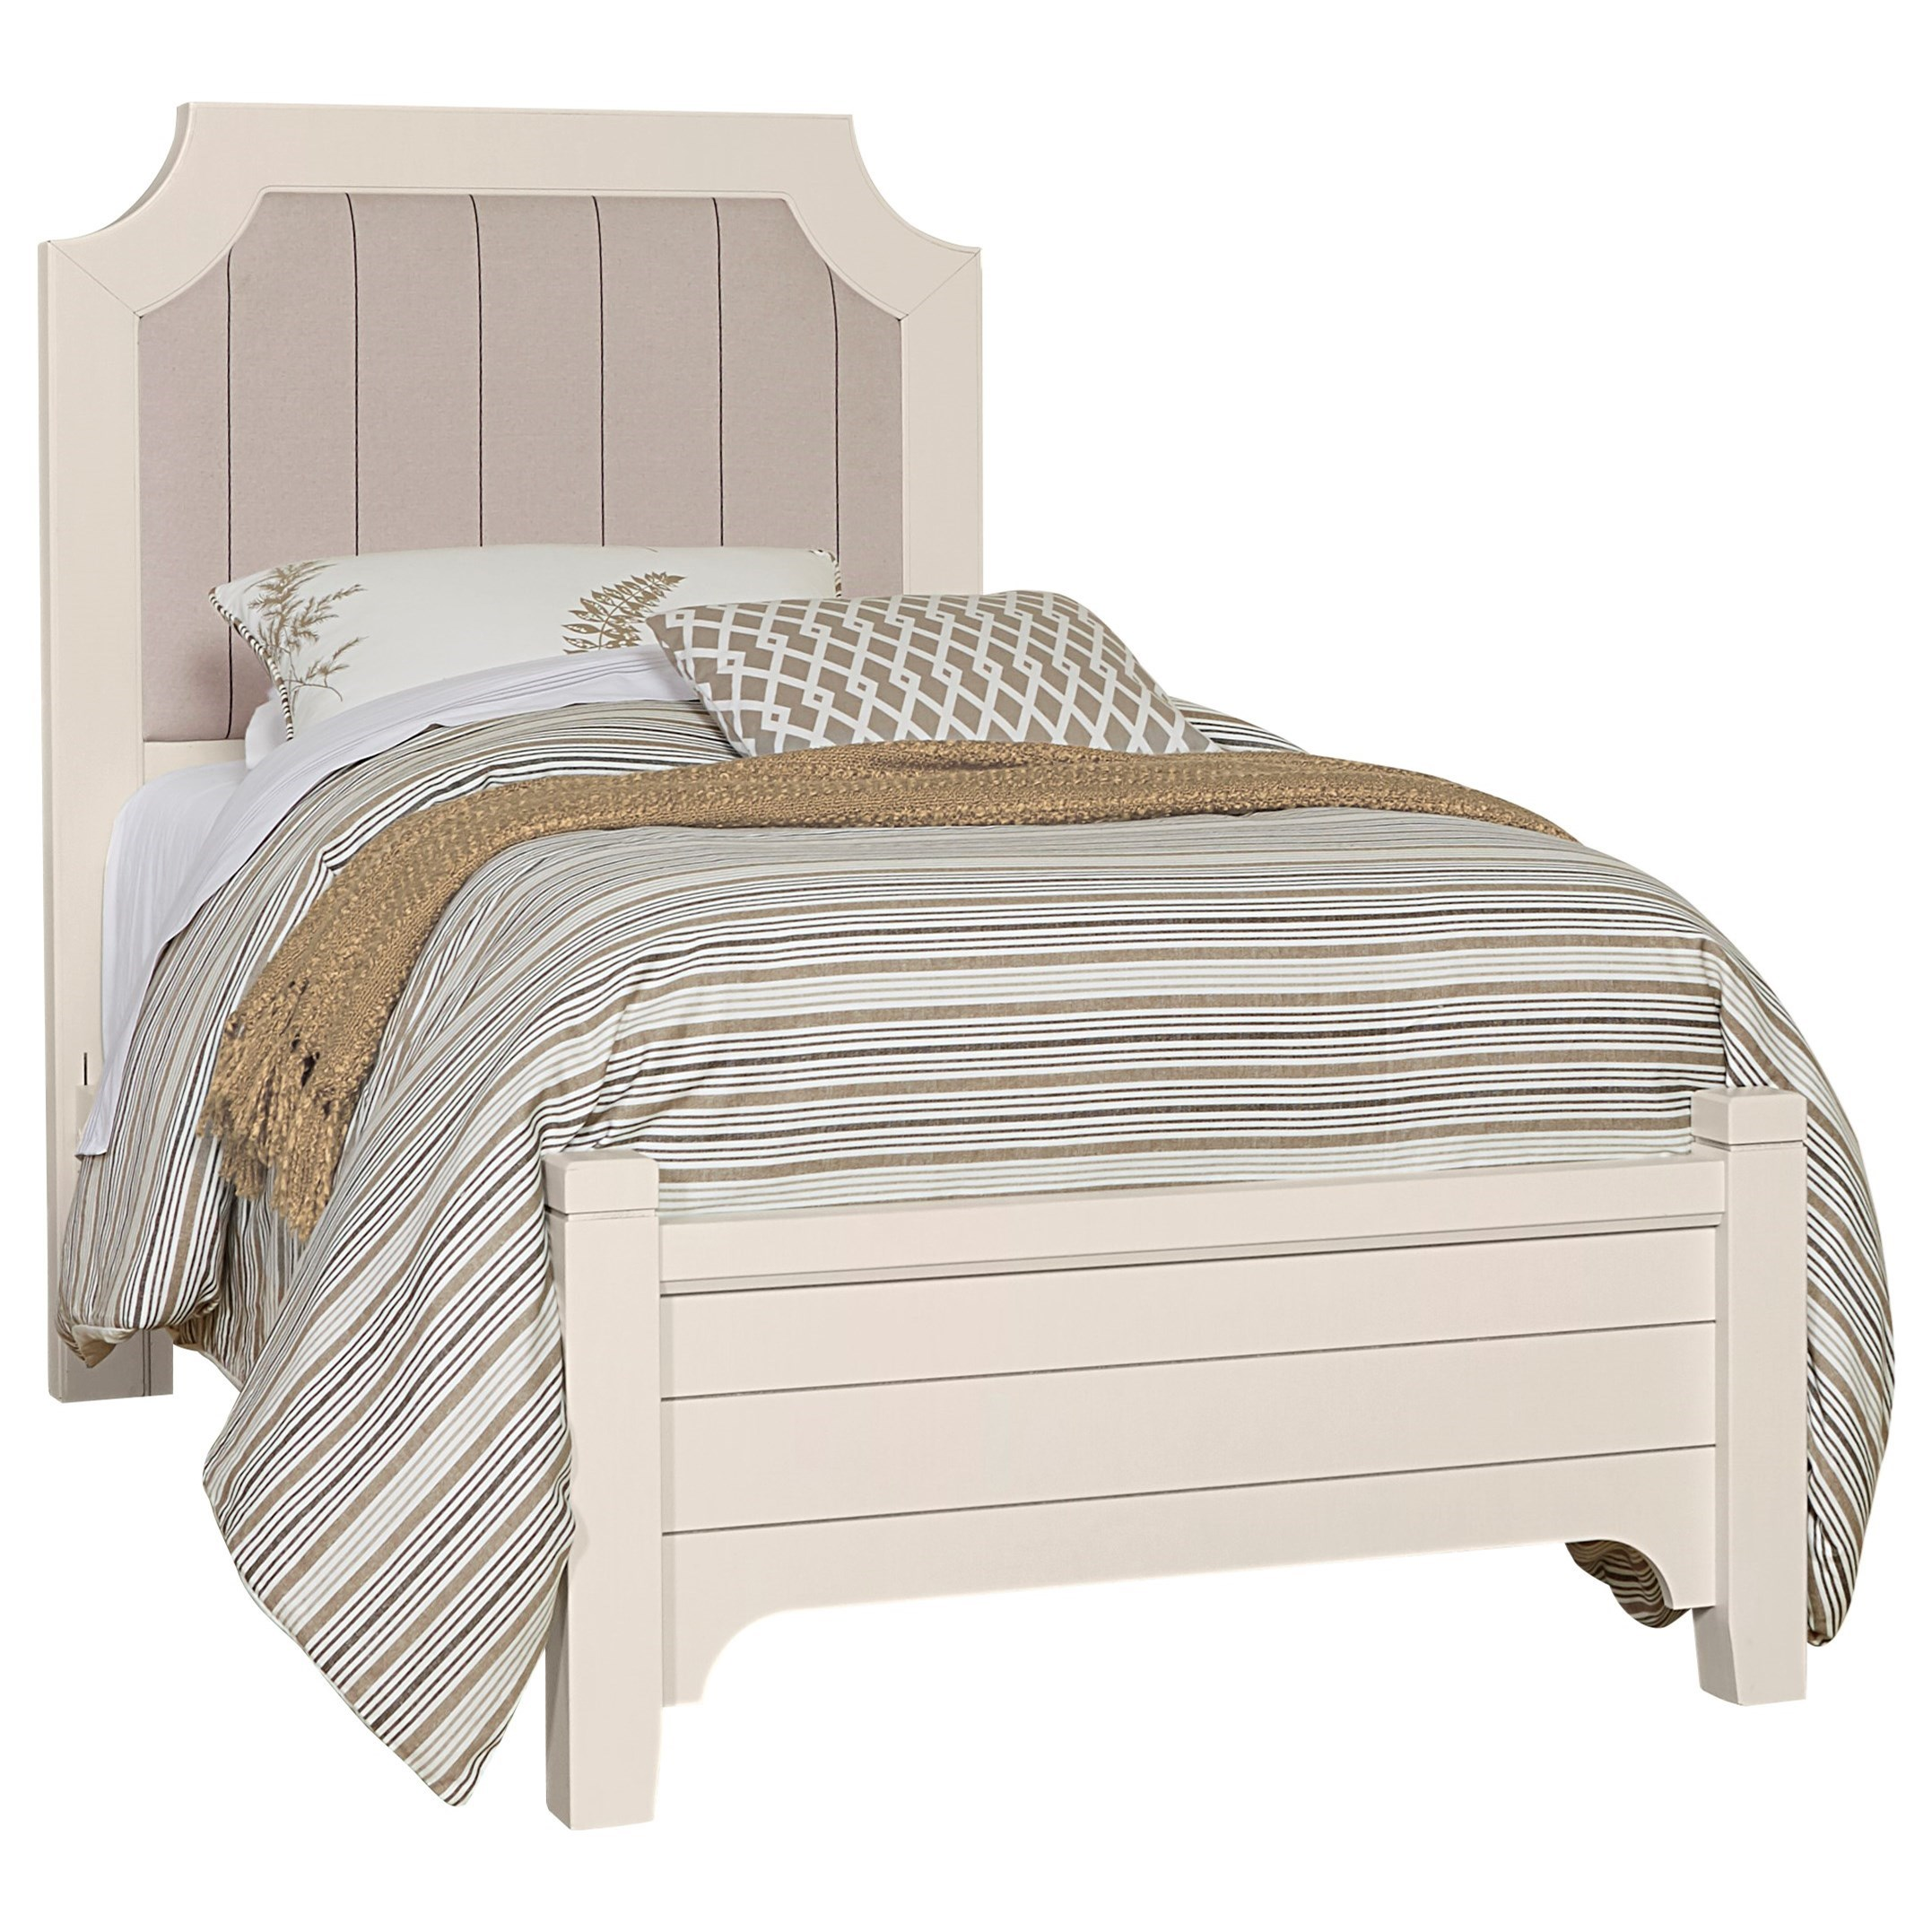 Vaughan Bassett Bungalow Transitional Twin Upholstered Bed With Low Profile Footboard Crowley Furniture Mattress Upholstered Beds